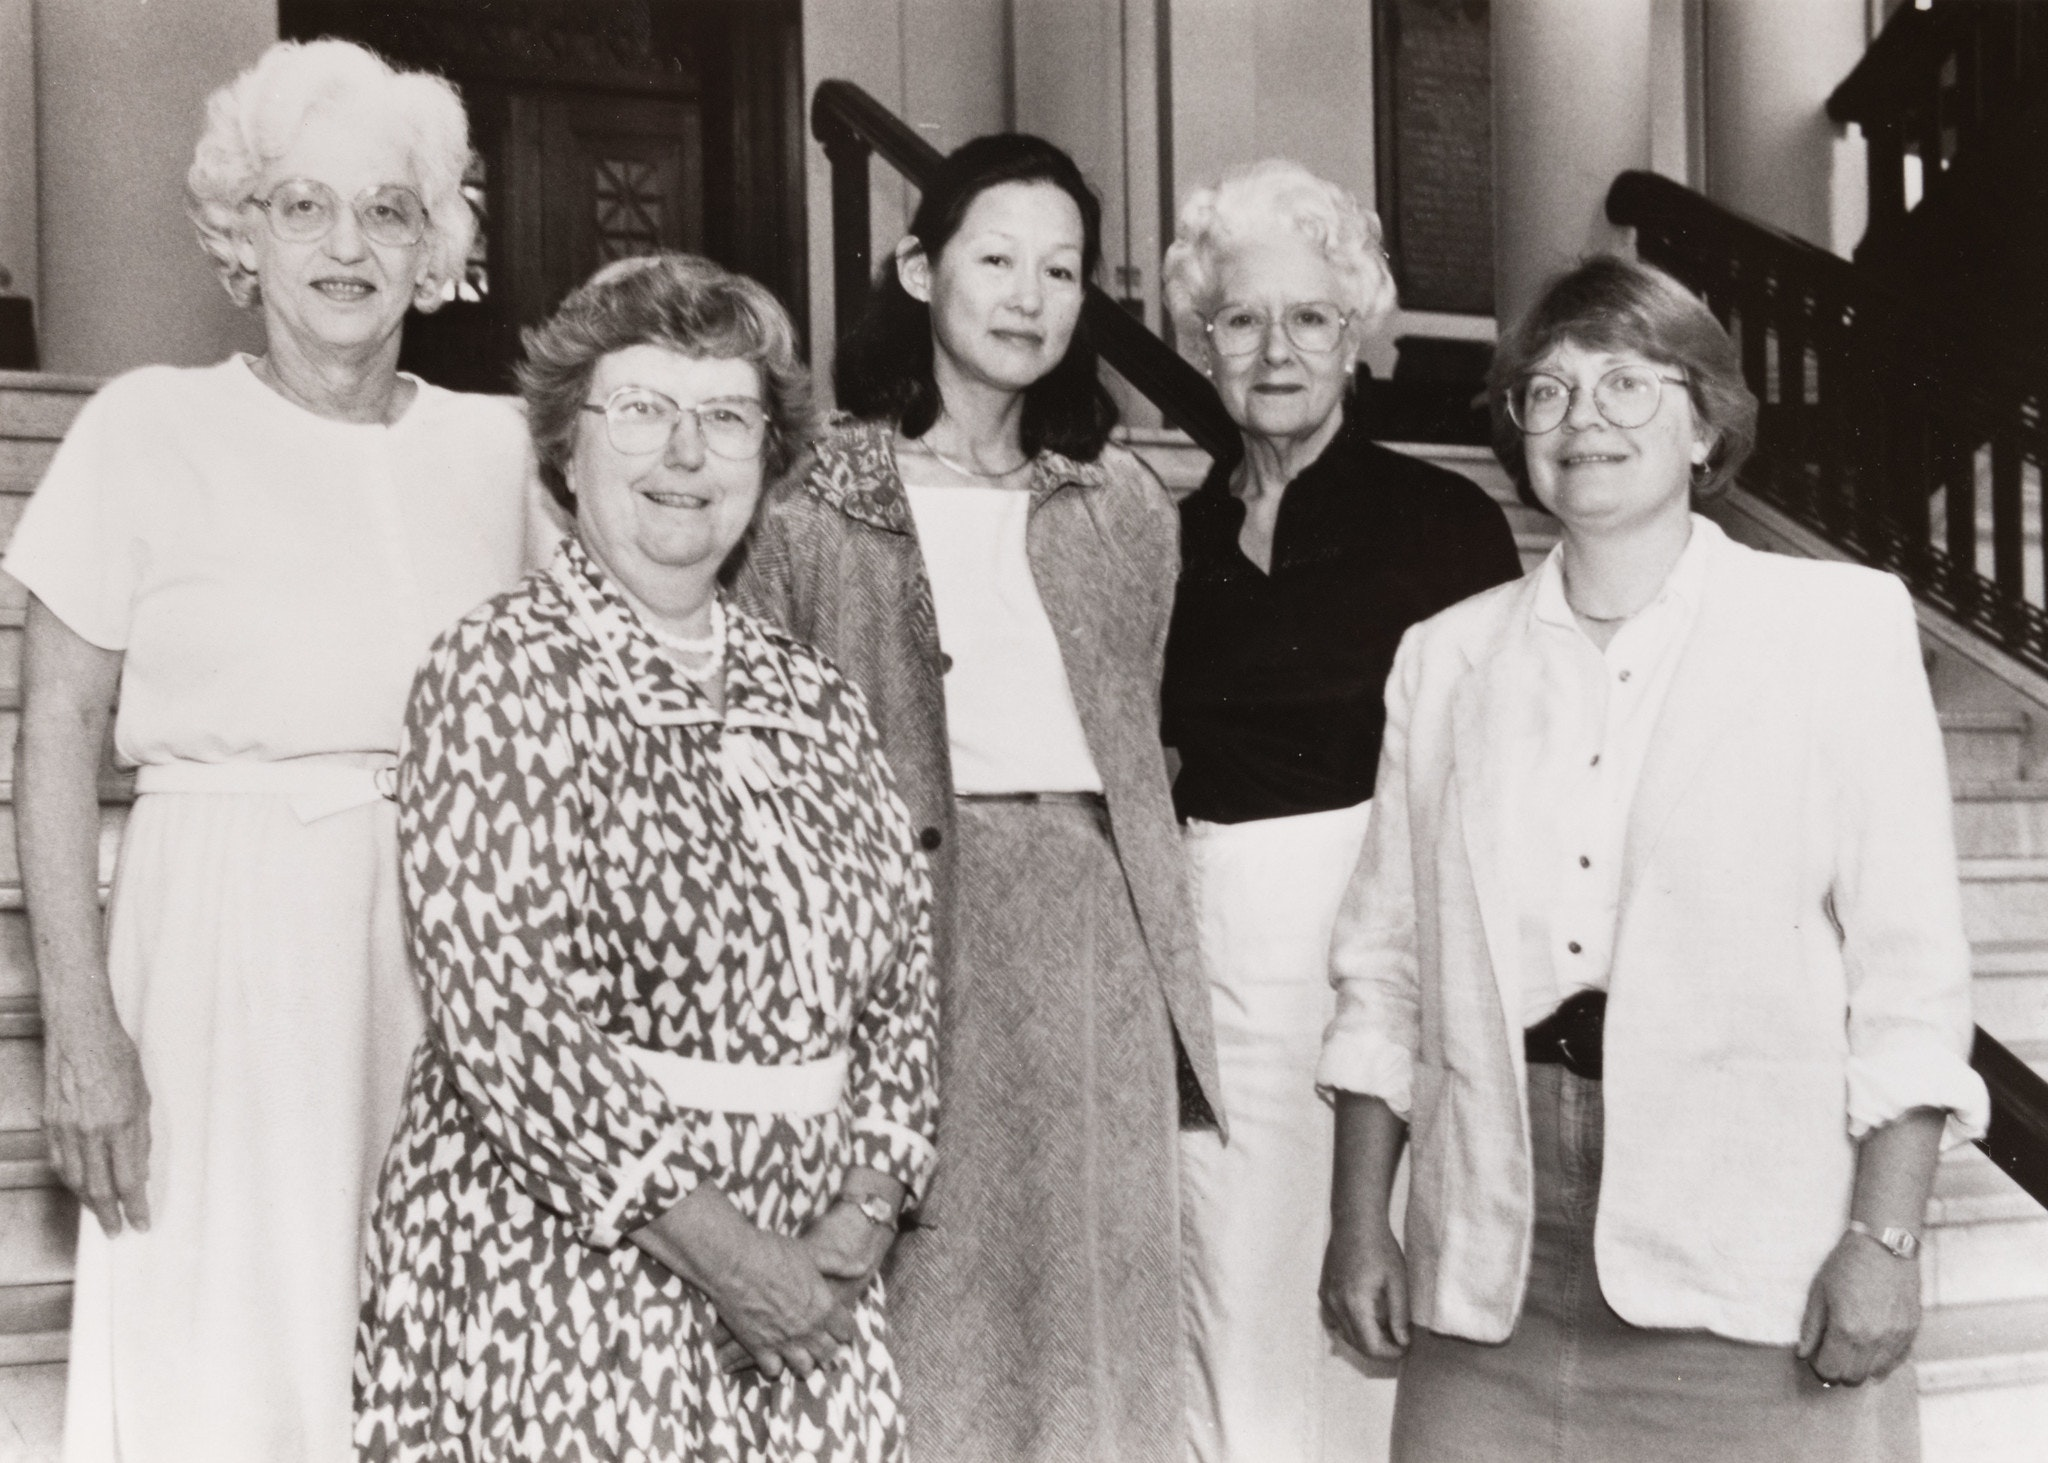 Sepia toned group photo of Harvard Professors, from left to right: Elizabeth Hay, Mary Ellen Avery, Alice Huang, Lynn Reed, Priscilla Schaffer